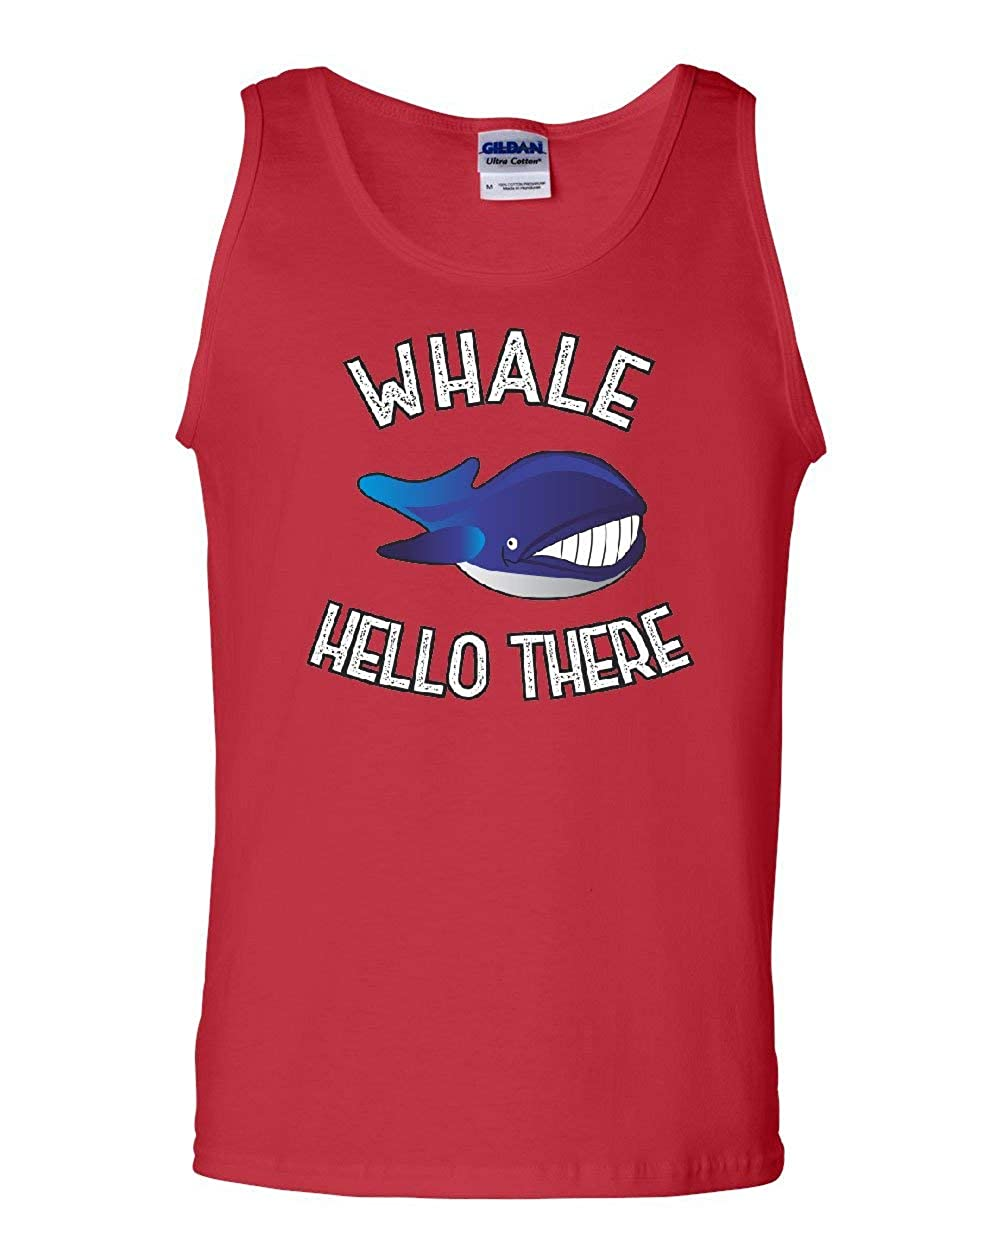 Whale Hello There Tank Top Funny Wildlife Ocean Cute Pun Wordplay Sleeveless